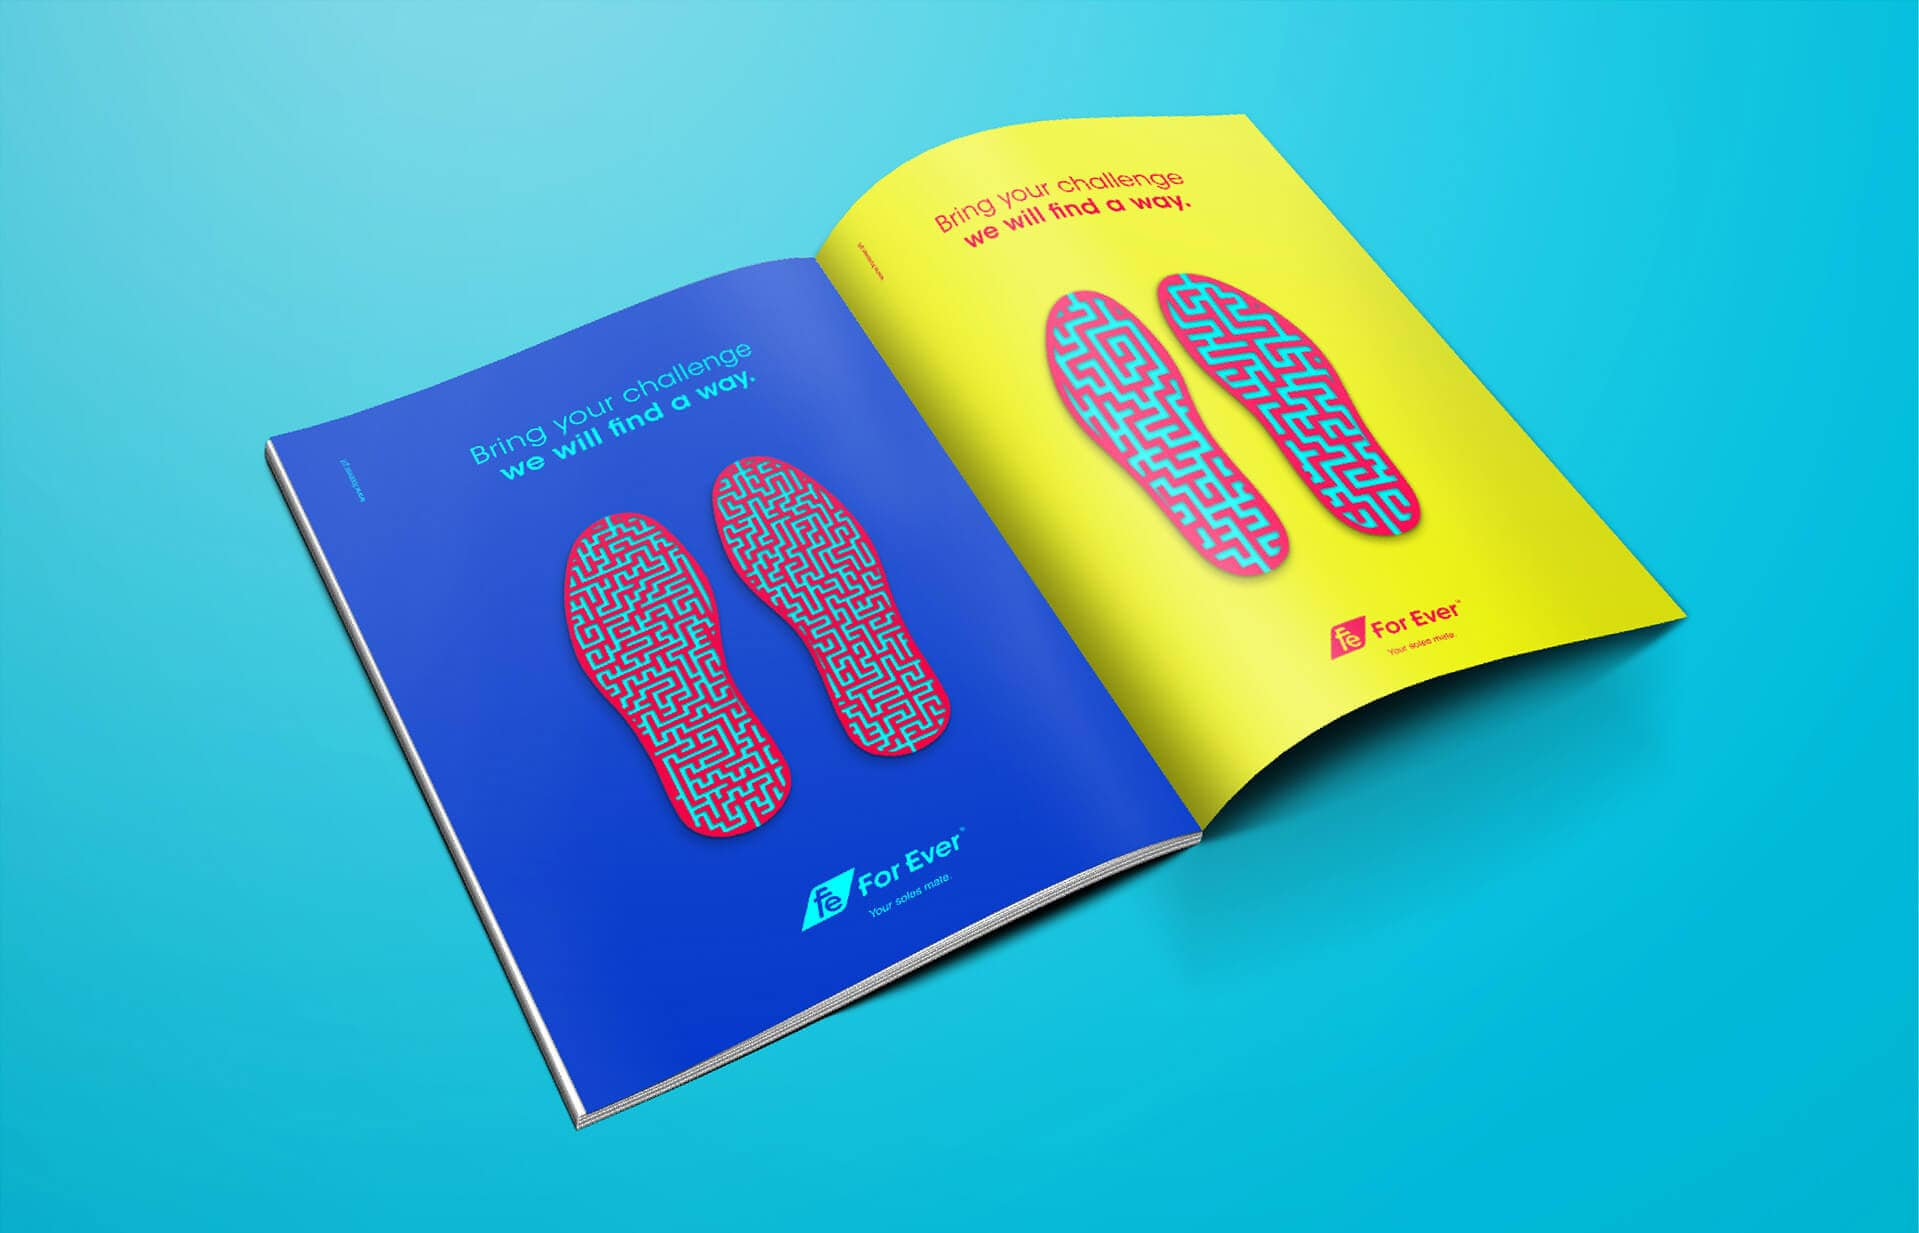 Footwear, soles, branding, industry, manufacture, factory, stationary, design, web, marketing